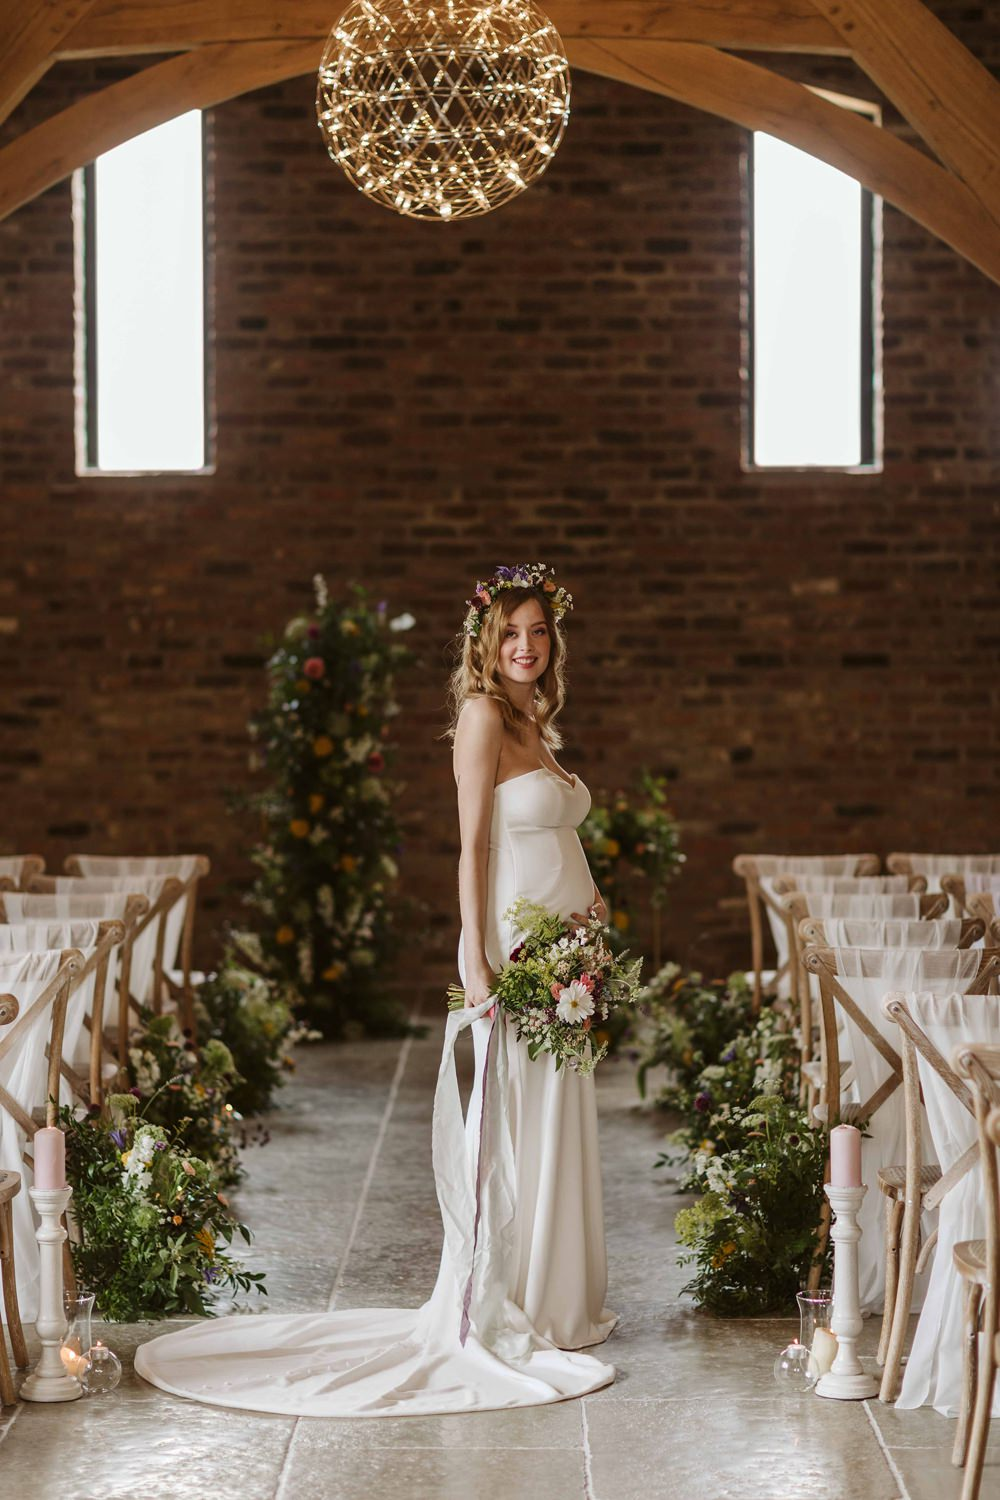 Dress Gown Bride Bridal Strapless Puddle Train Oakwood at Ryther Wedding Freya Raby